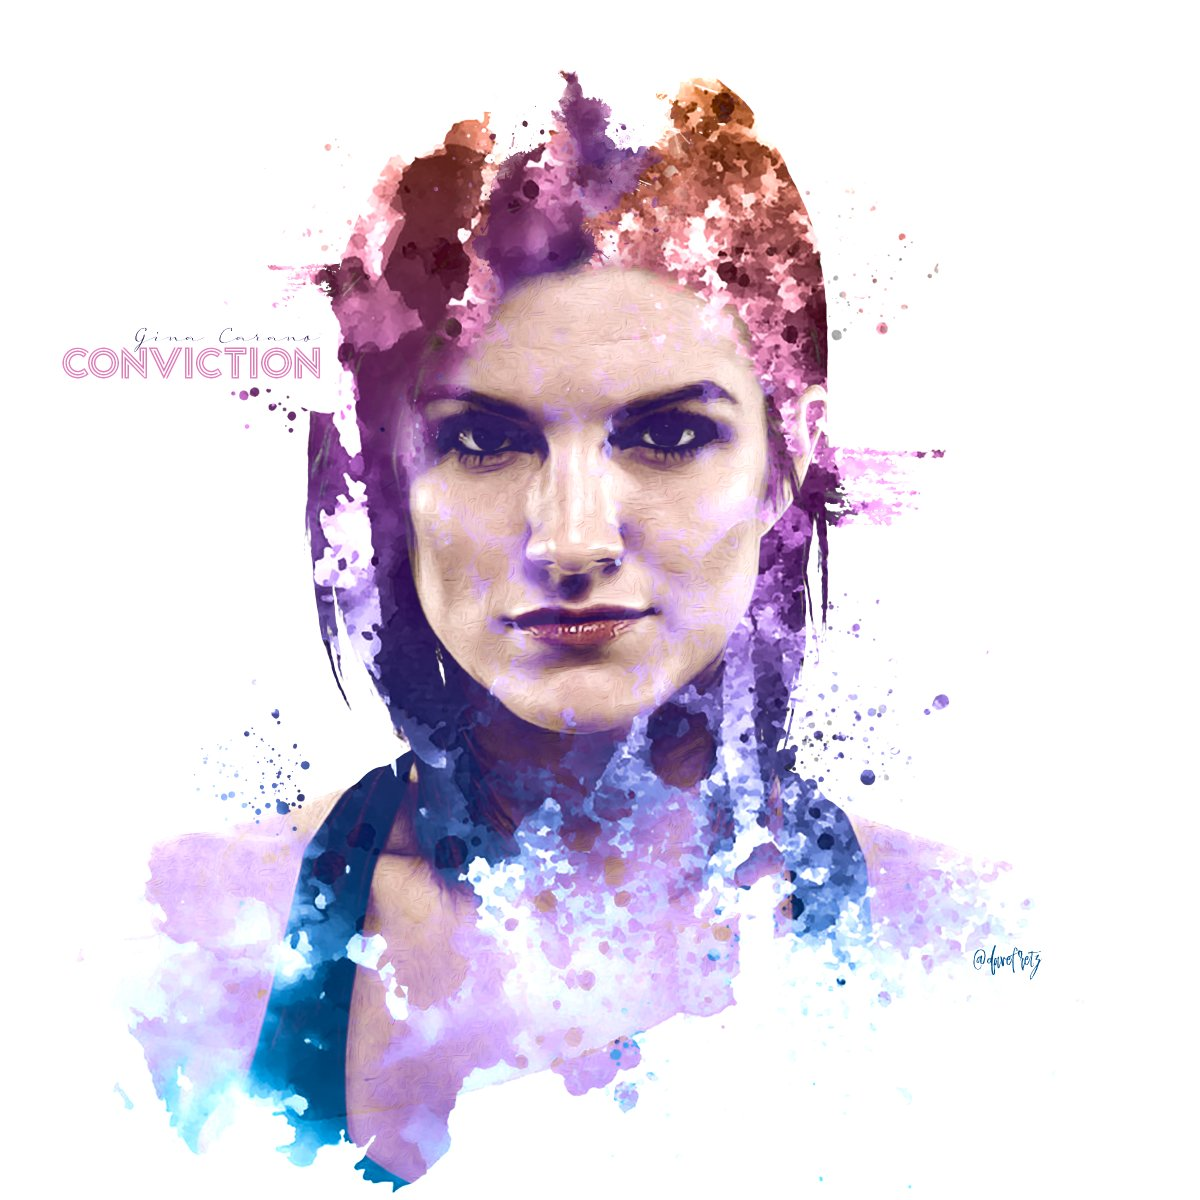 Hey #MMATwitter @ginacarano may be THE most requested #portraitedit I've had to date, and it's always totally scared the SH!T out of my, ha! I hope that I did this justice. I'm pleased with the outcome so I hope you all are as well. Gina, thanks for all you did to pave the way! https://t.co/SiaEt5vJJz